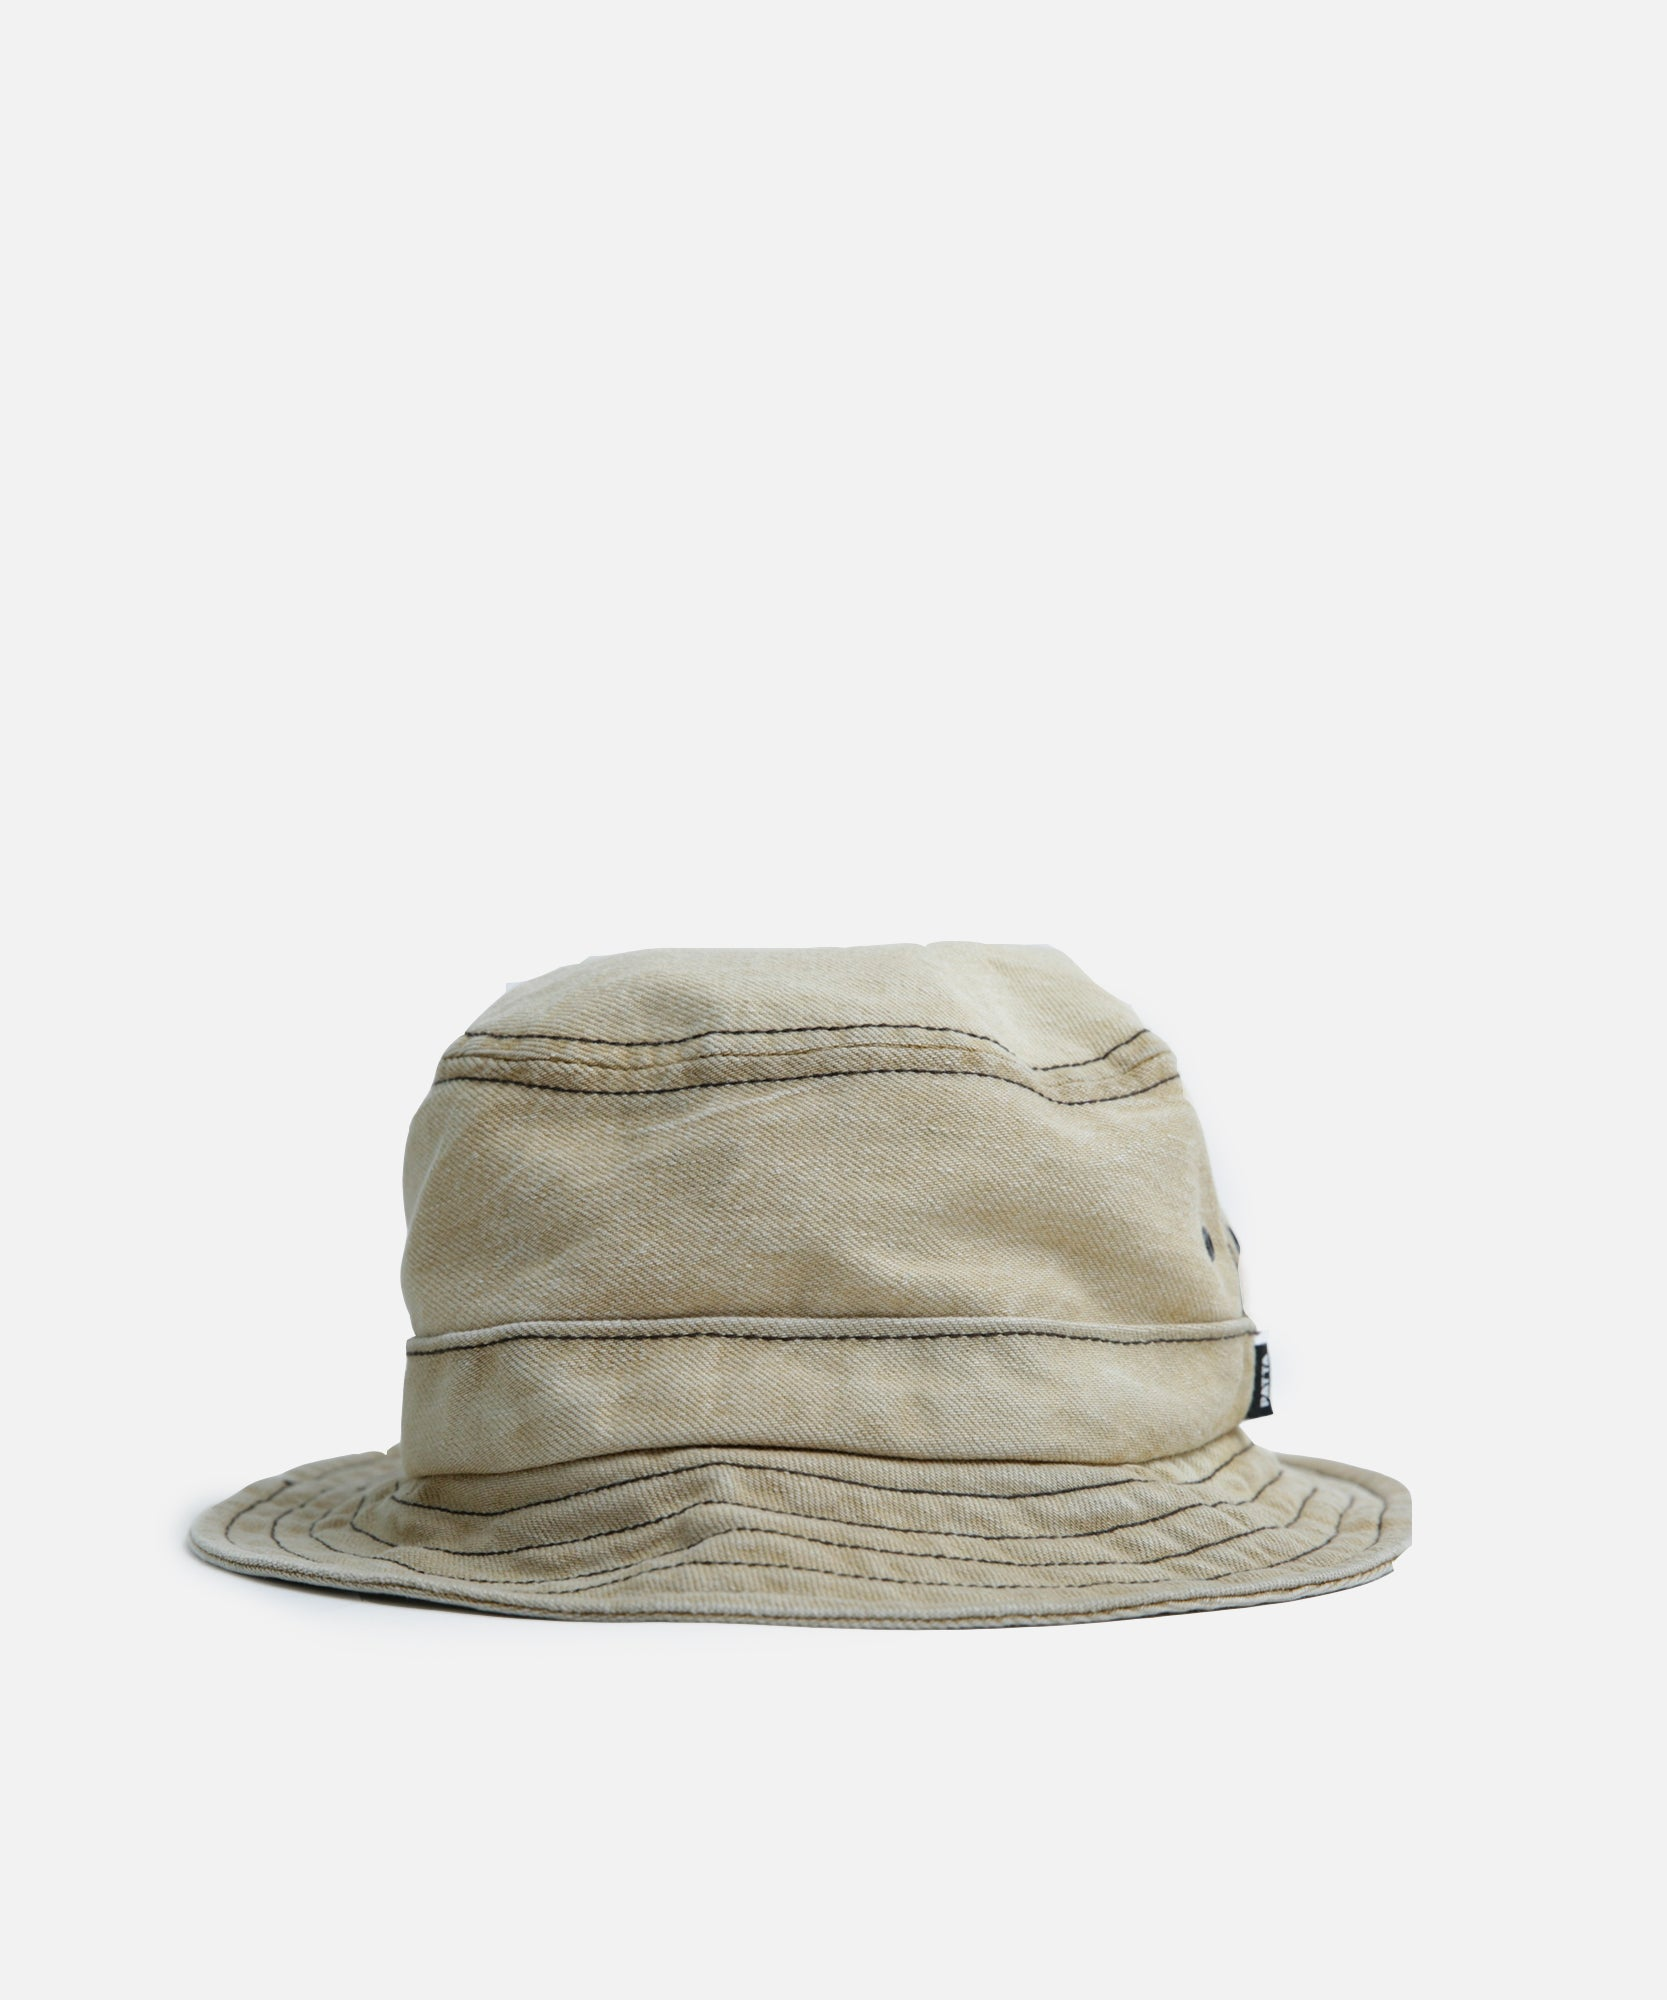 Patta Re-works x Levi's Bleached Bucket Hat (Sand)